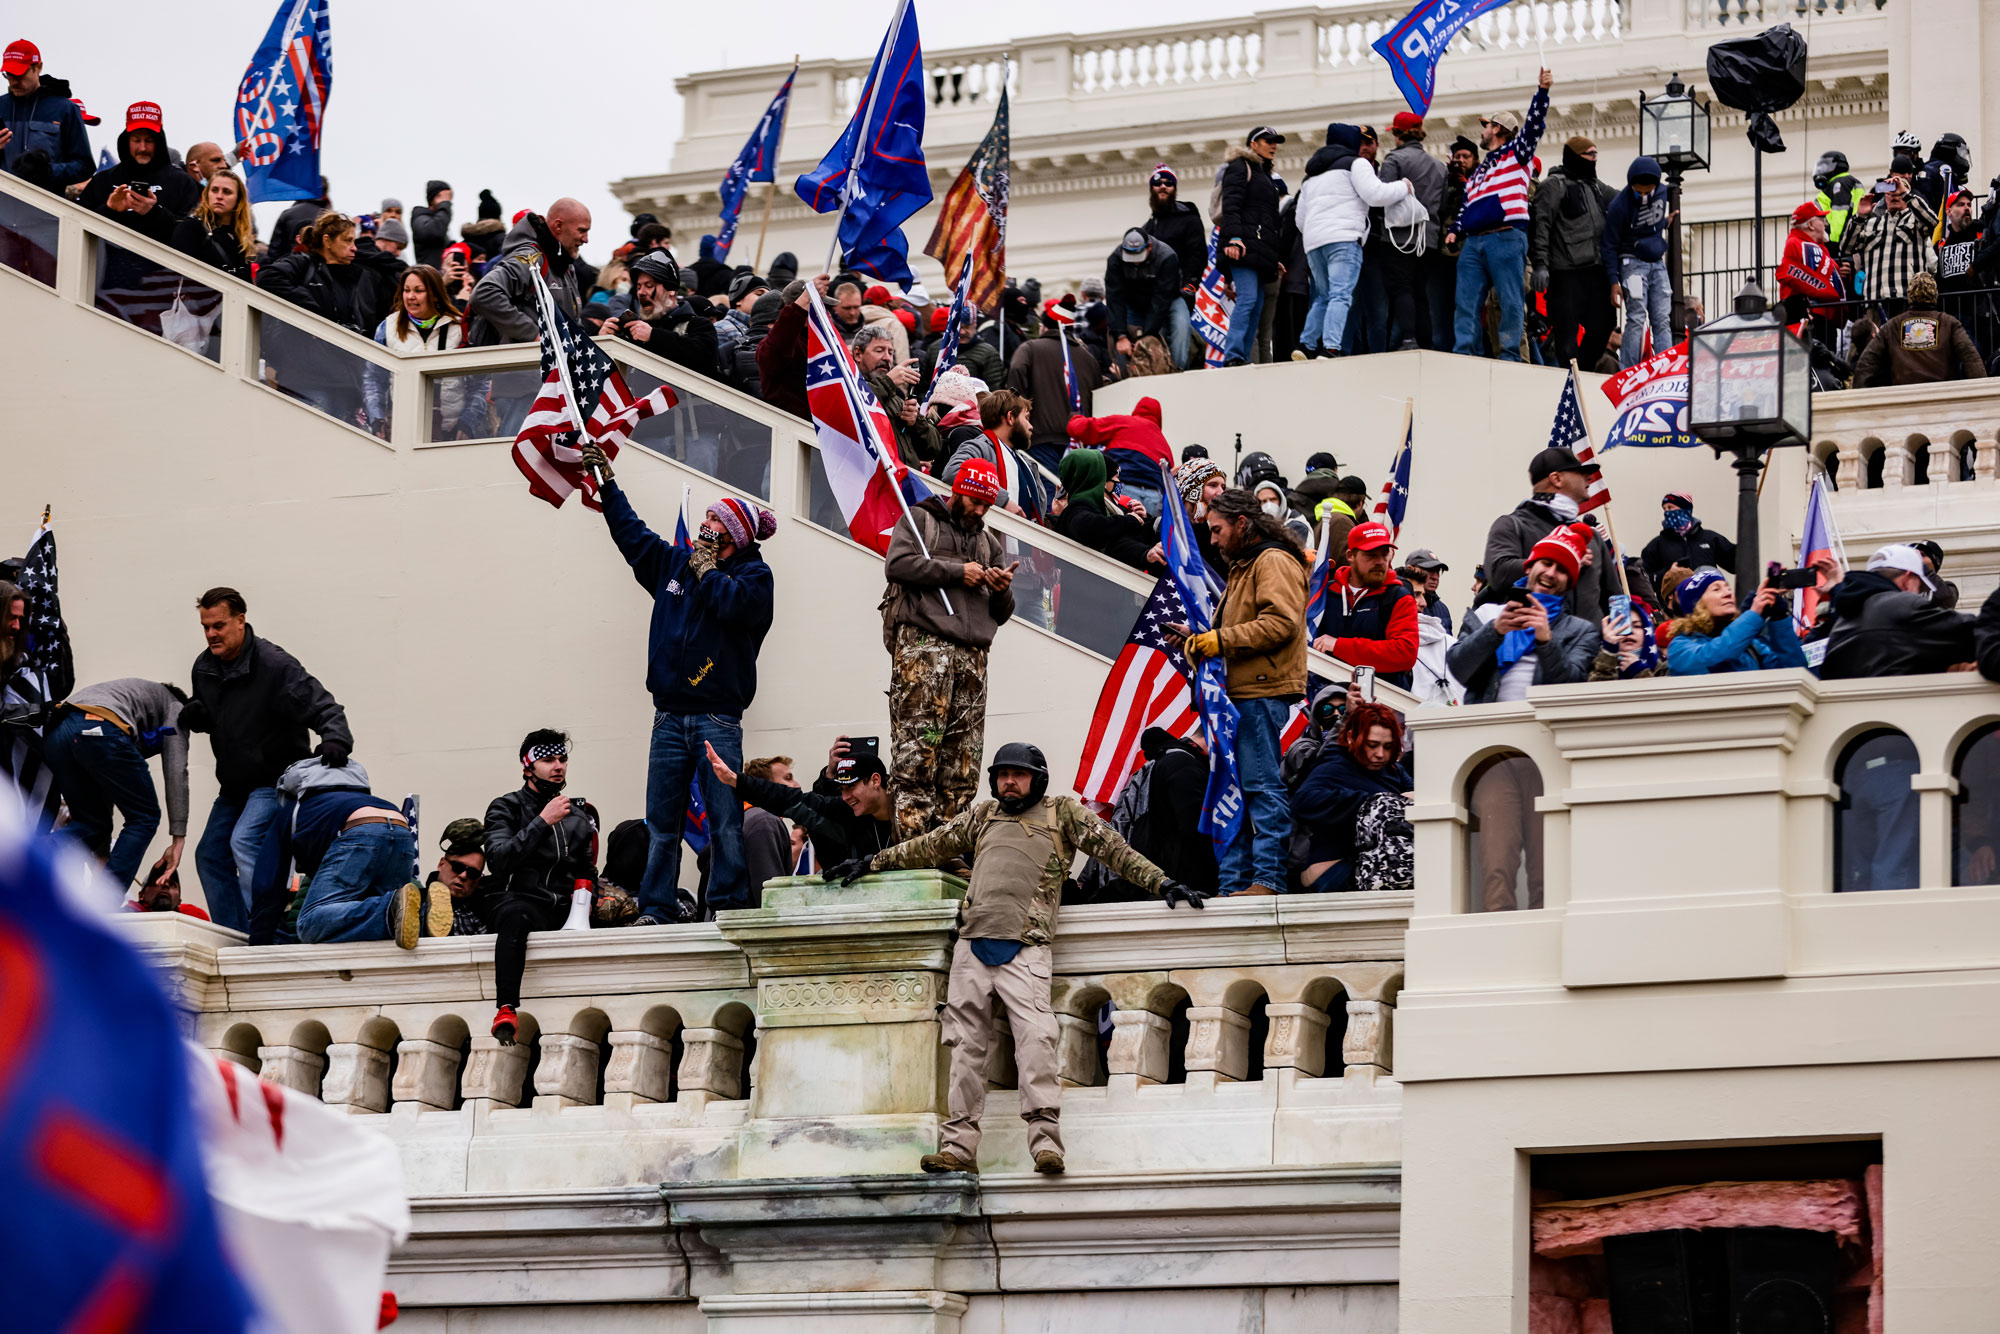 Trump supporters storm the U.S. Capitol on January 6 in Washington, DC.